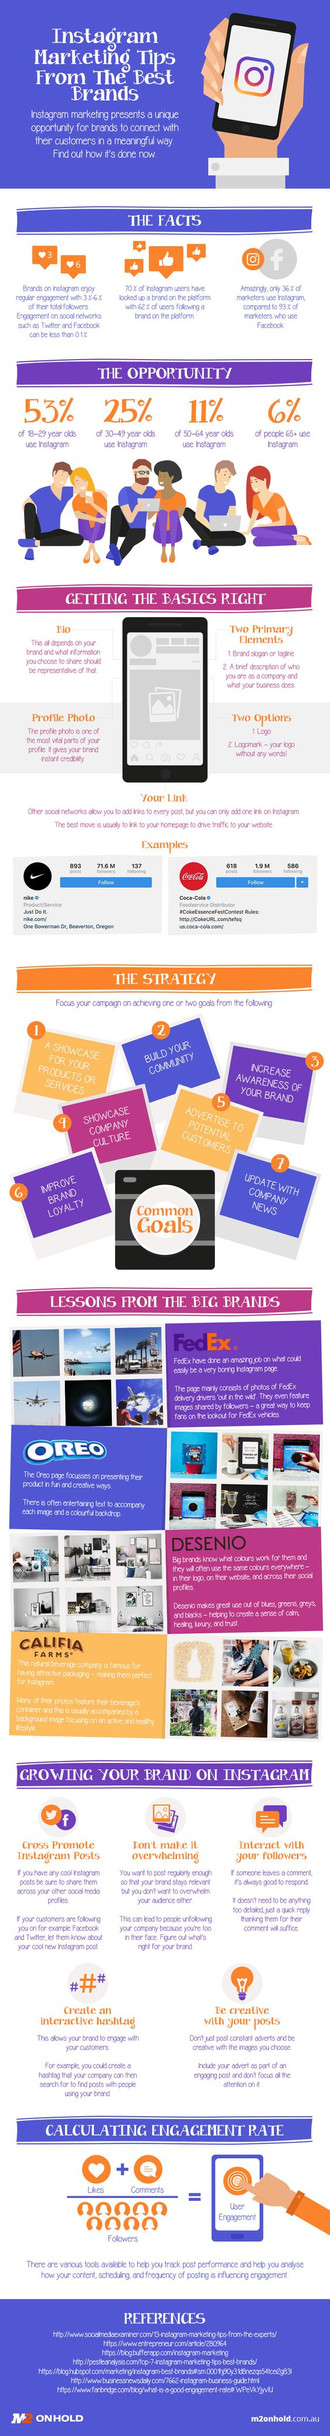 Instagram Marketing Tips from the Best Marketers [Infographic]